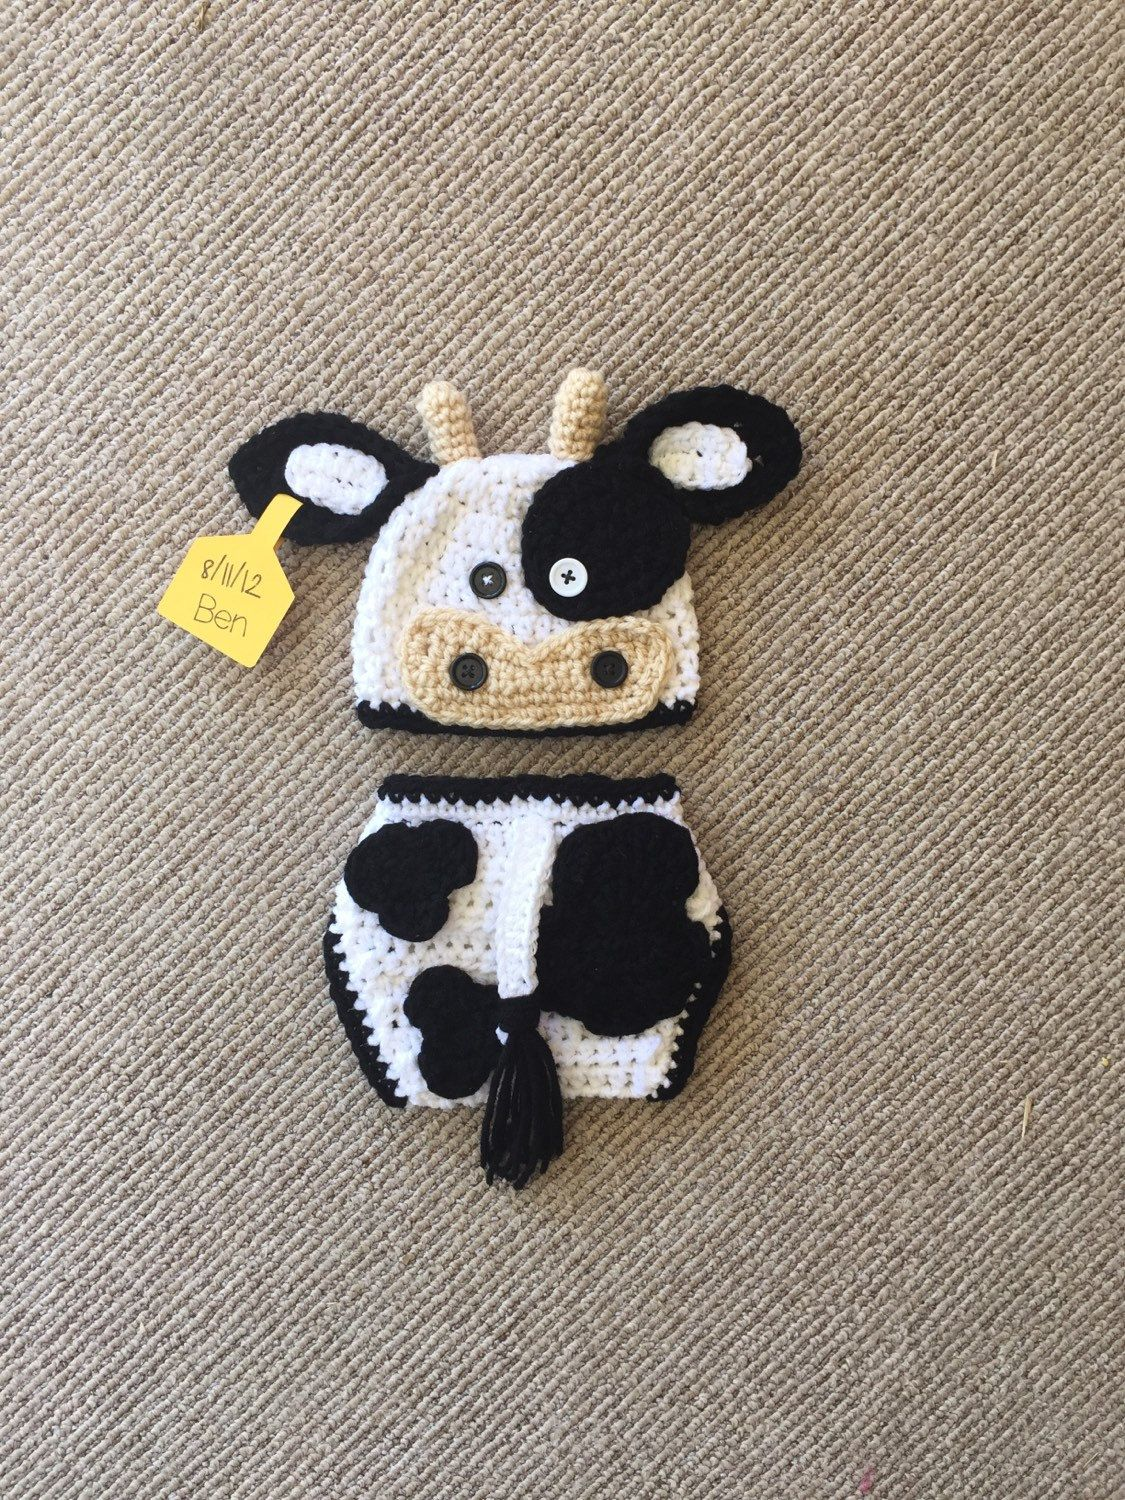 Boy Black And White Crochet Cow Hat And Diaper Cover Farm Animals